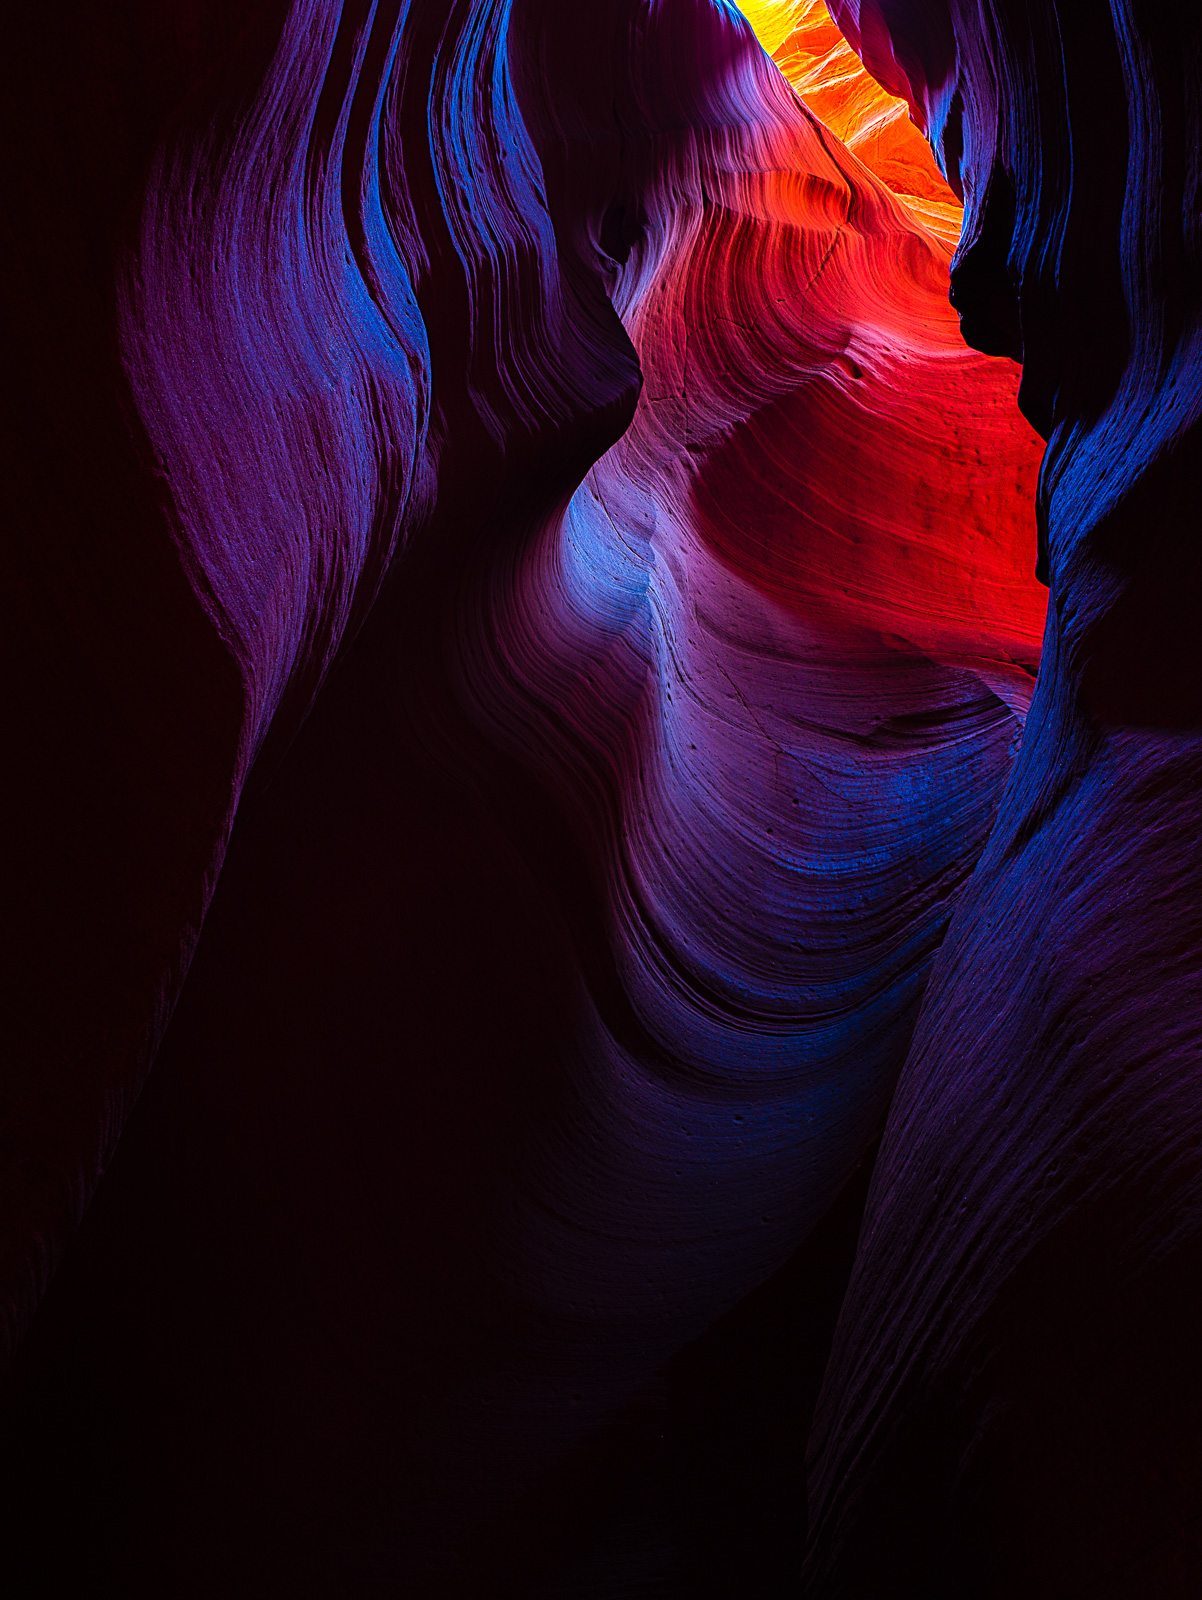 Alice's Wonderland,Arizona,Desert,HDR,Slot Canyon,Upper Antelope Valley,Vertical, photo